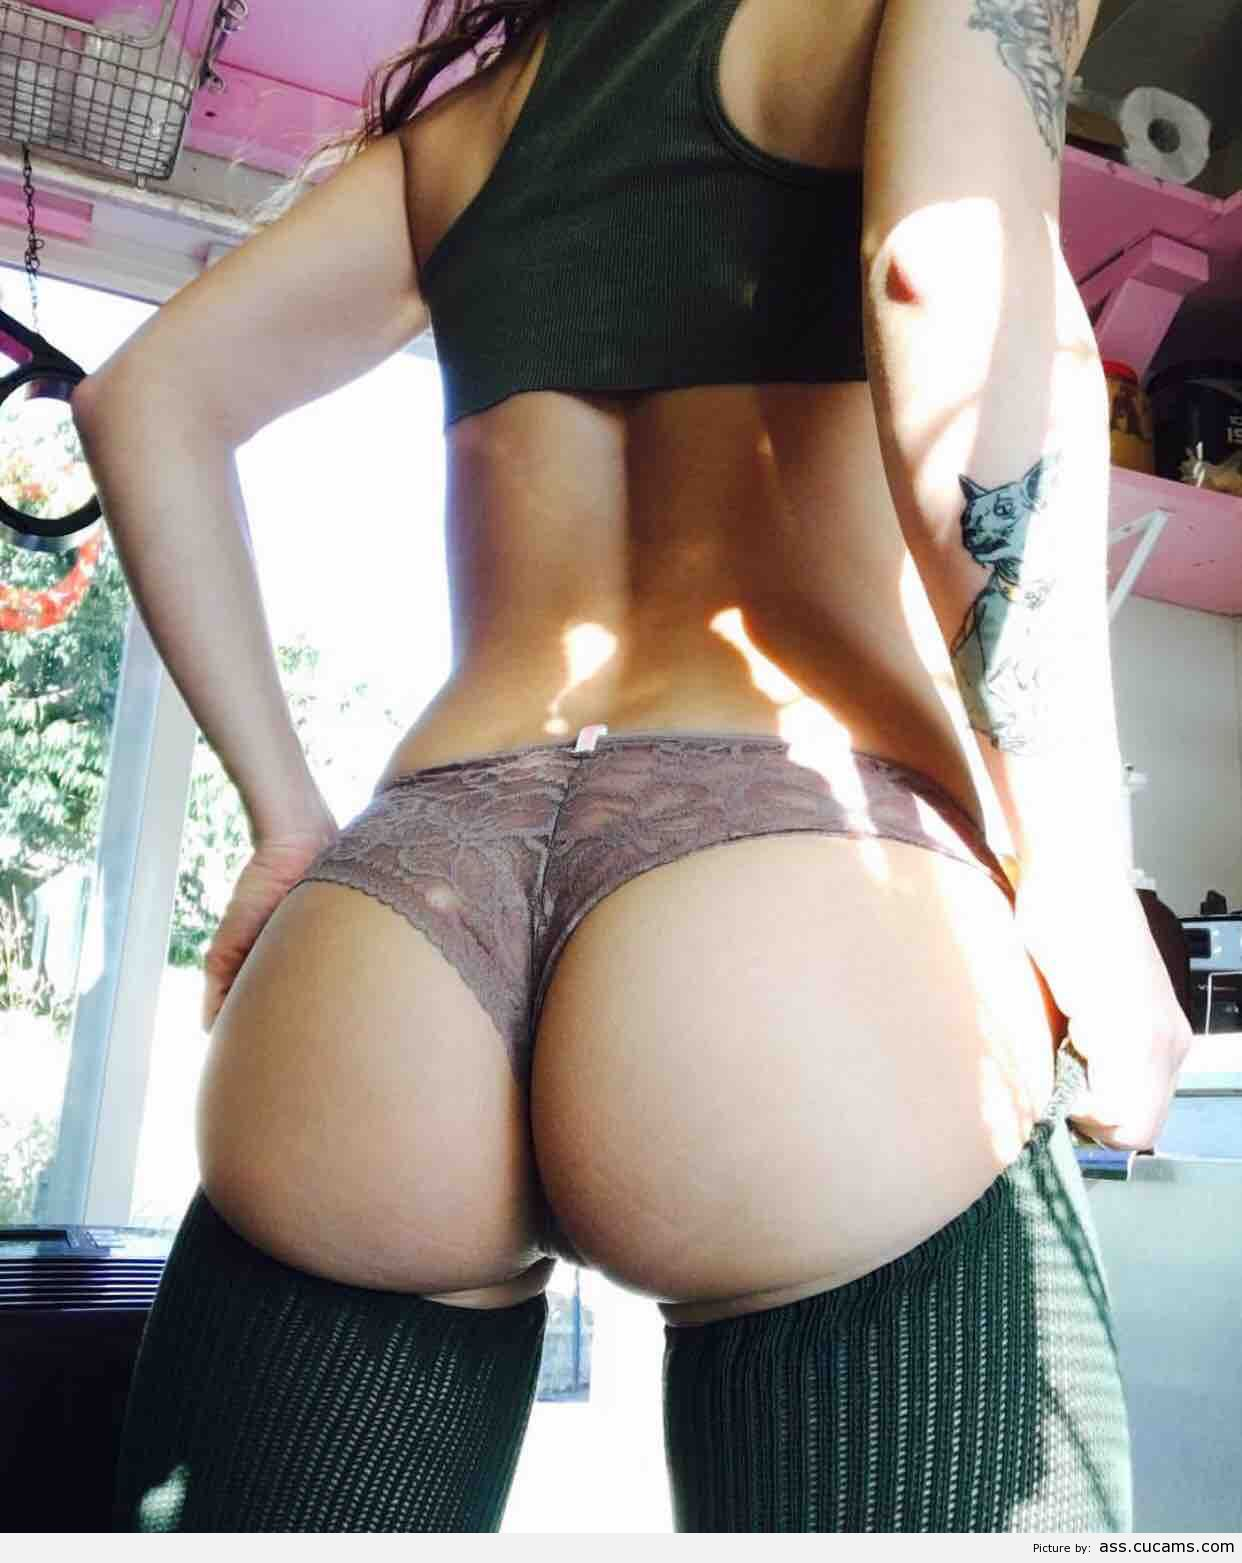 Ass Amsterdam Seduce by ass.cucams.com